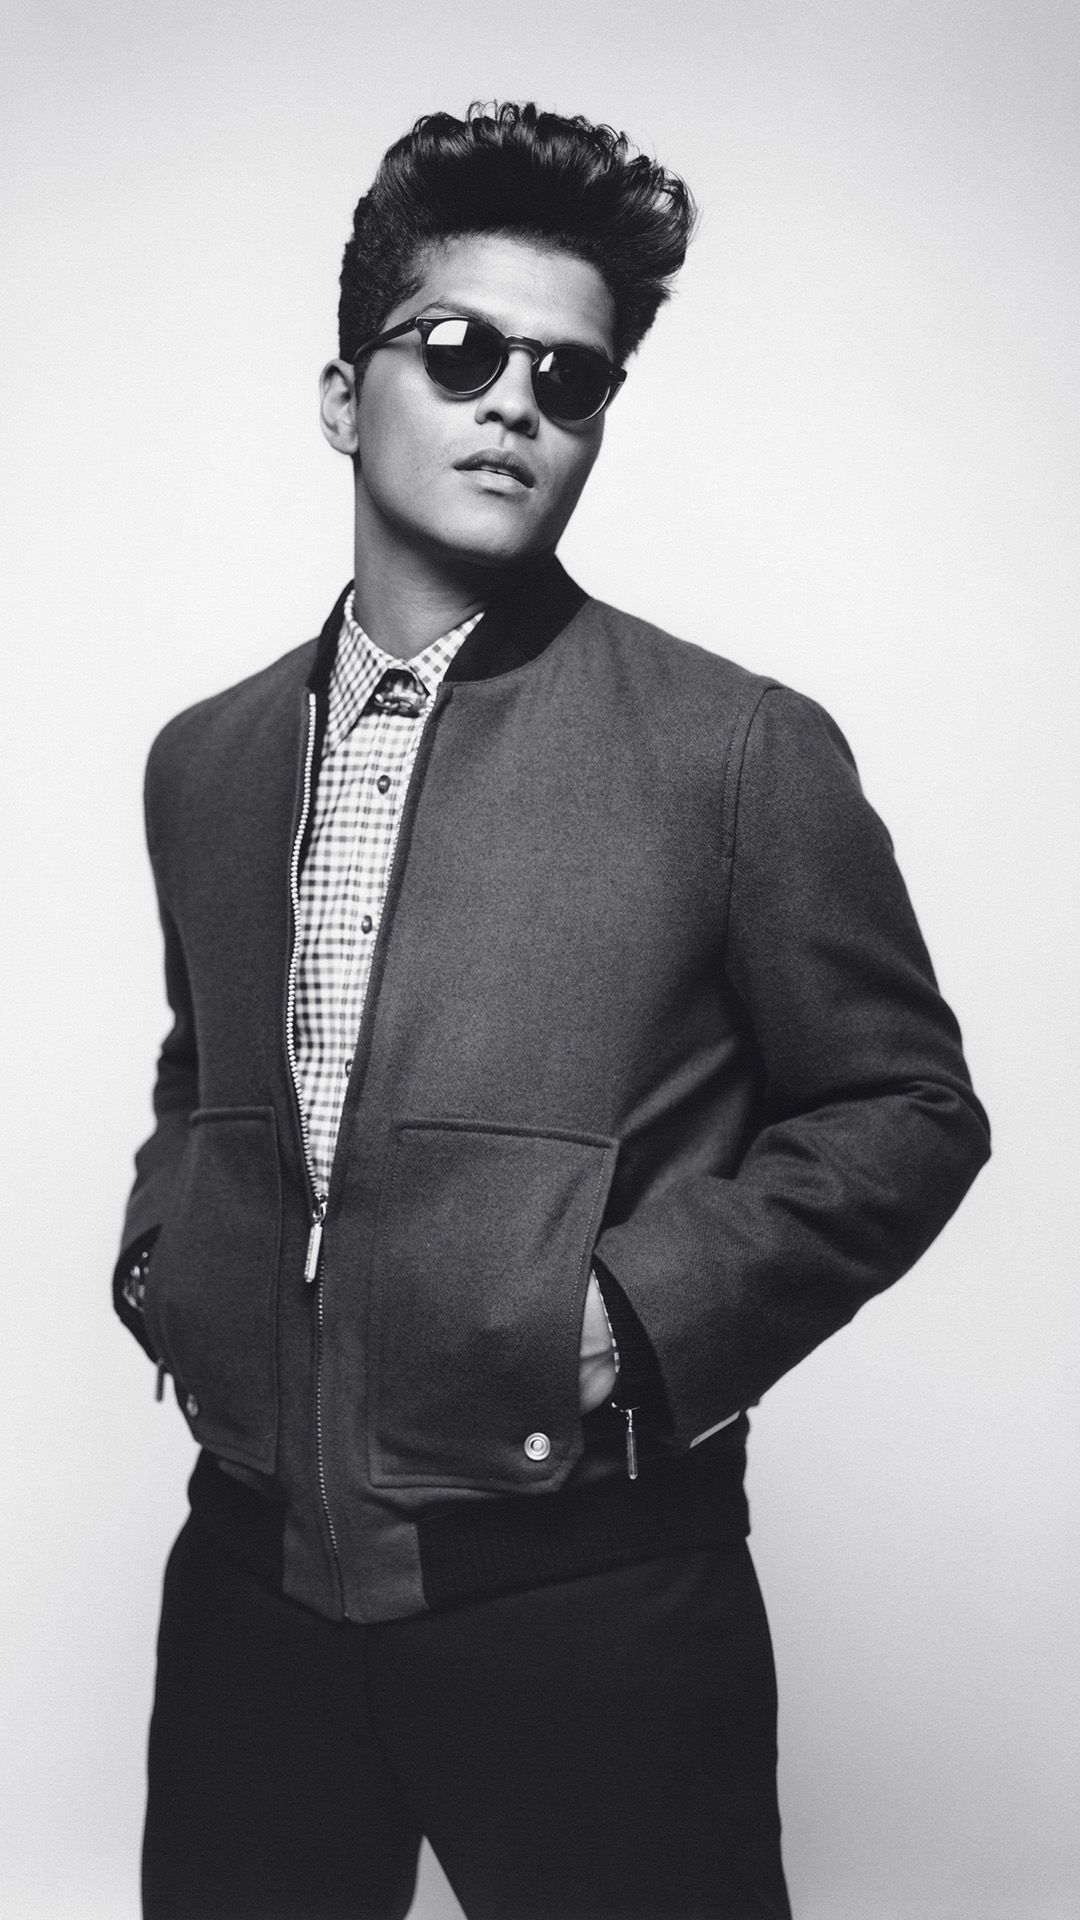 Bruno mars tap to see more sexy celebrities in black white iphone wallpapers